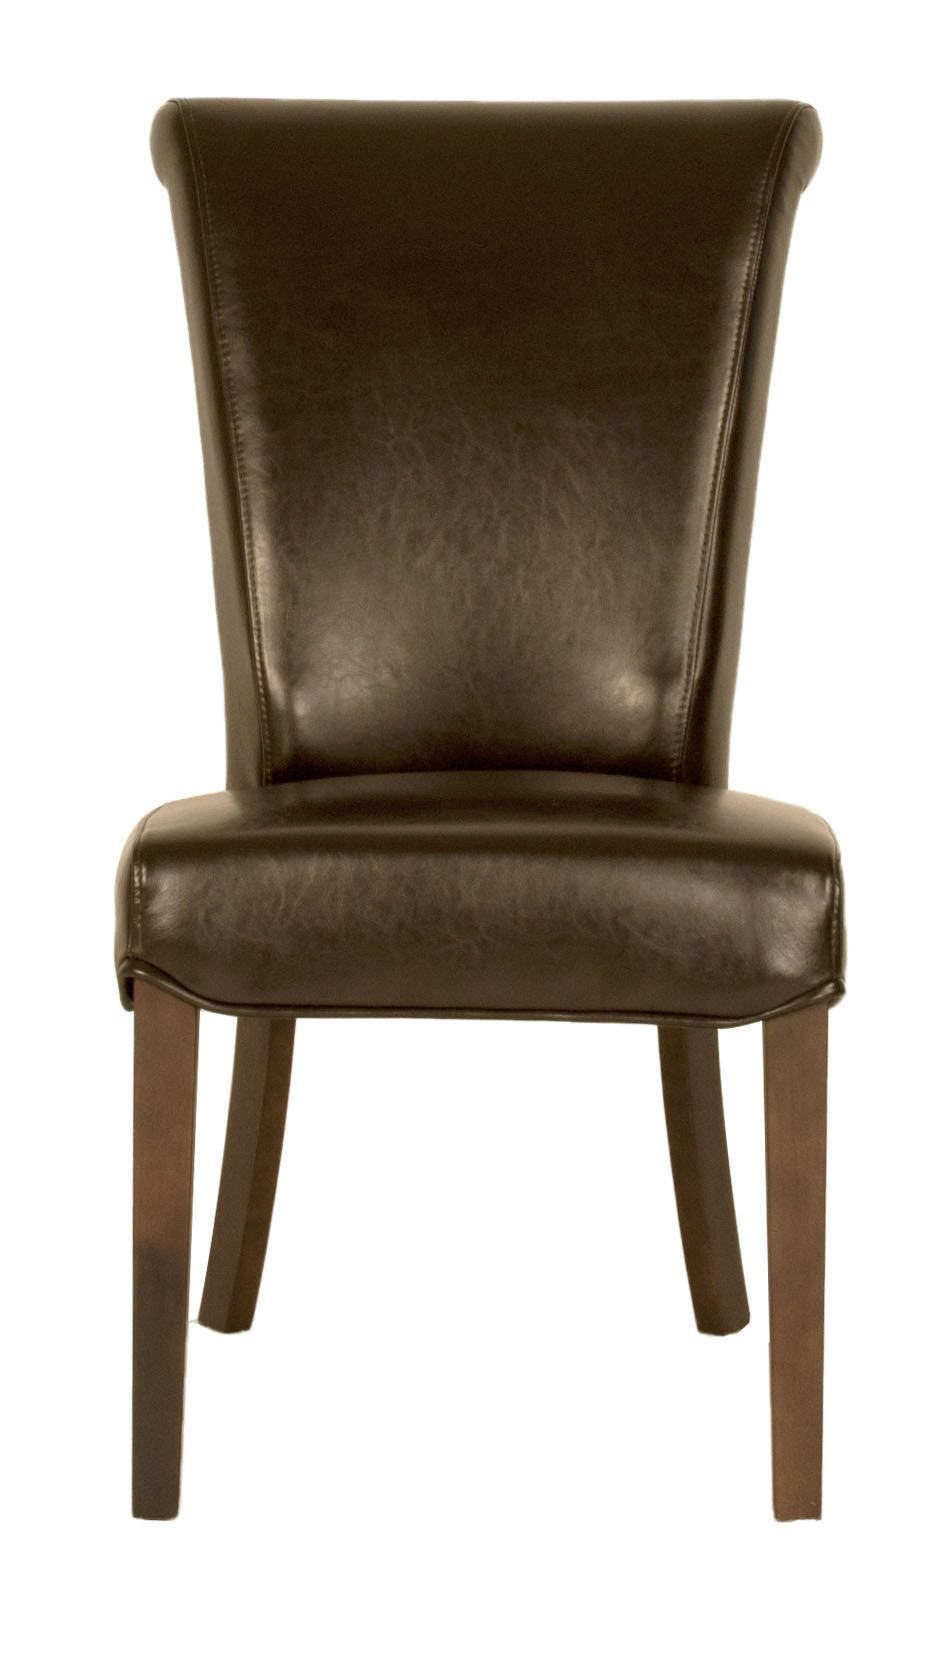 Orient Express Furniture Dining Room Sofie Dining Chair 6413   The Village  Shoppe   Yakima,